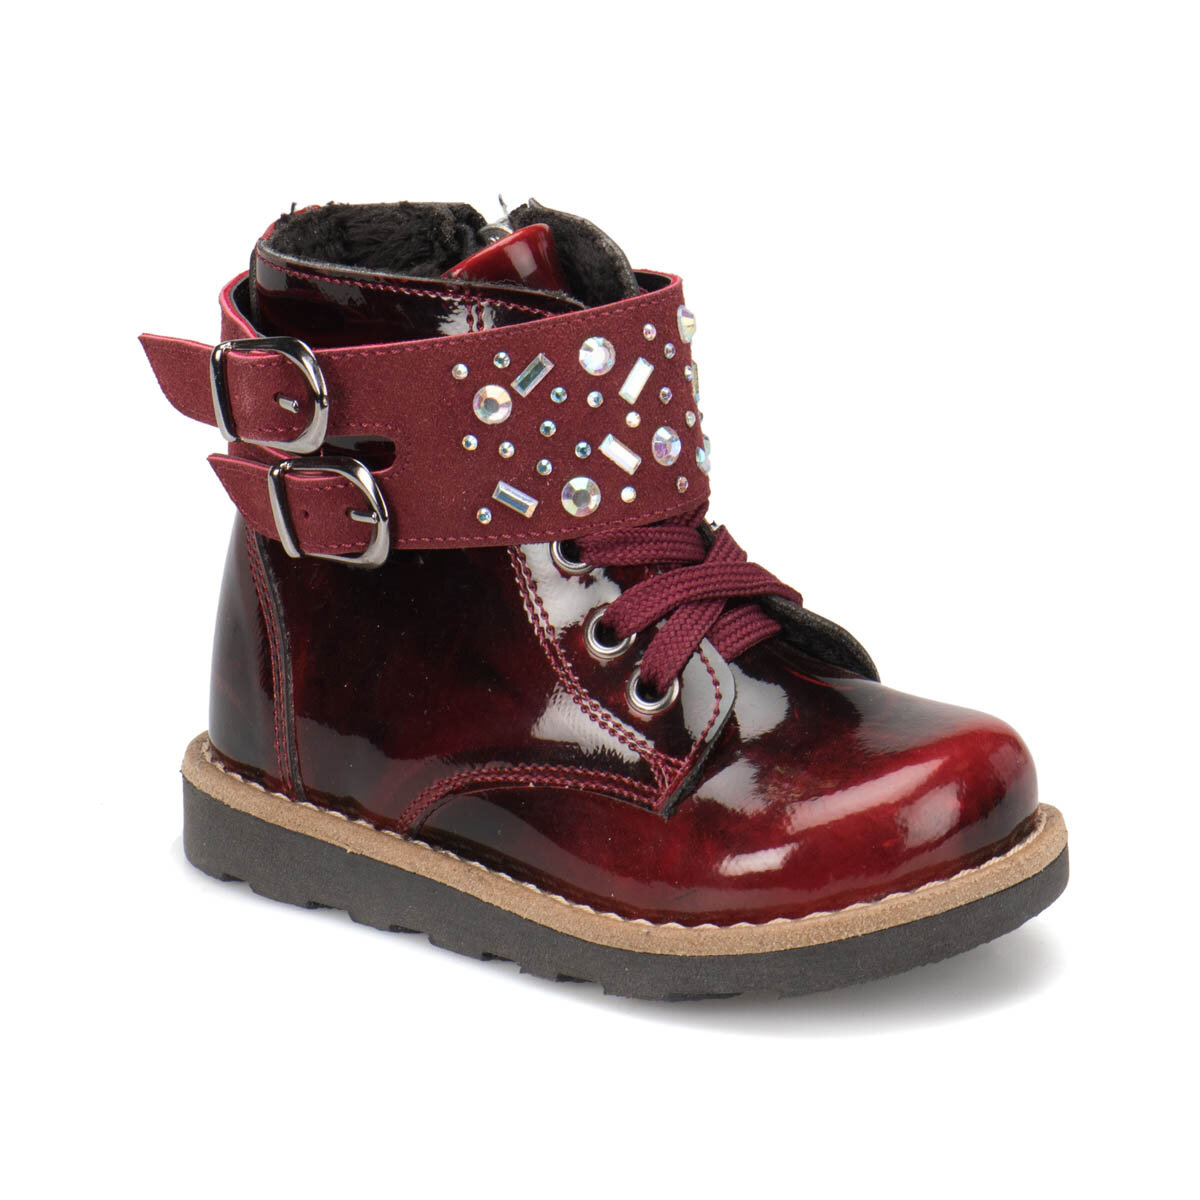 FLO BLSS27 Burgundy Female Child Boots Balloon-s